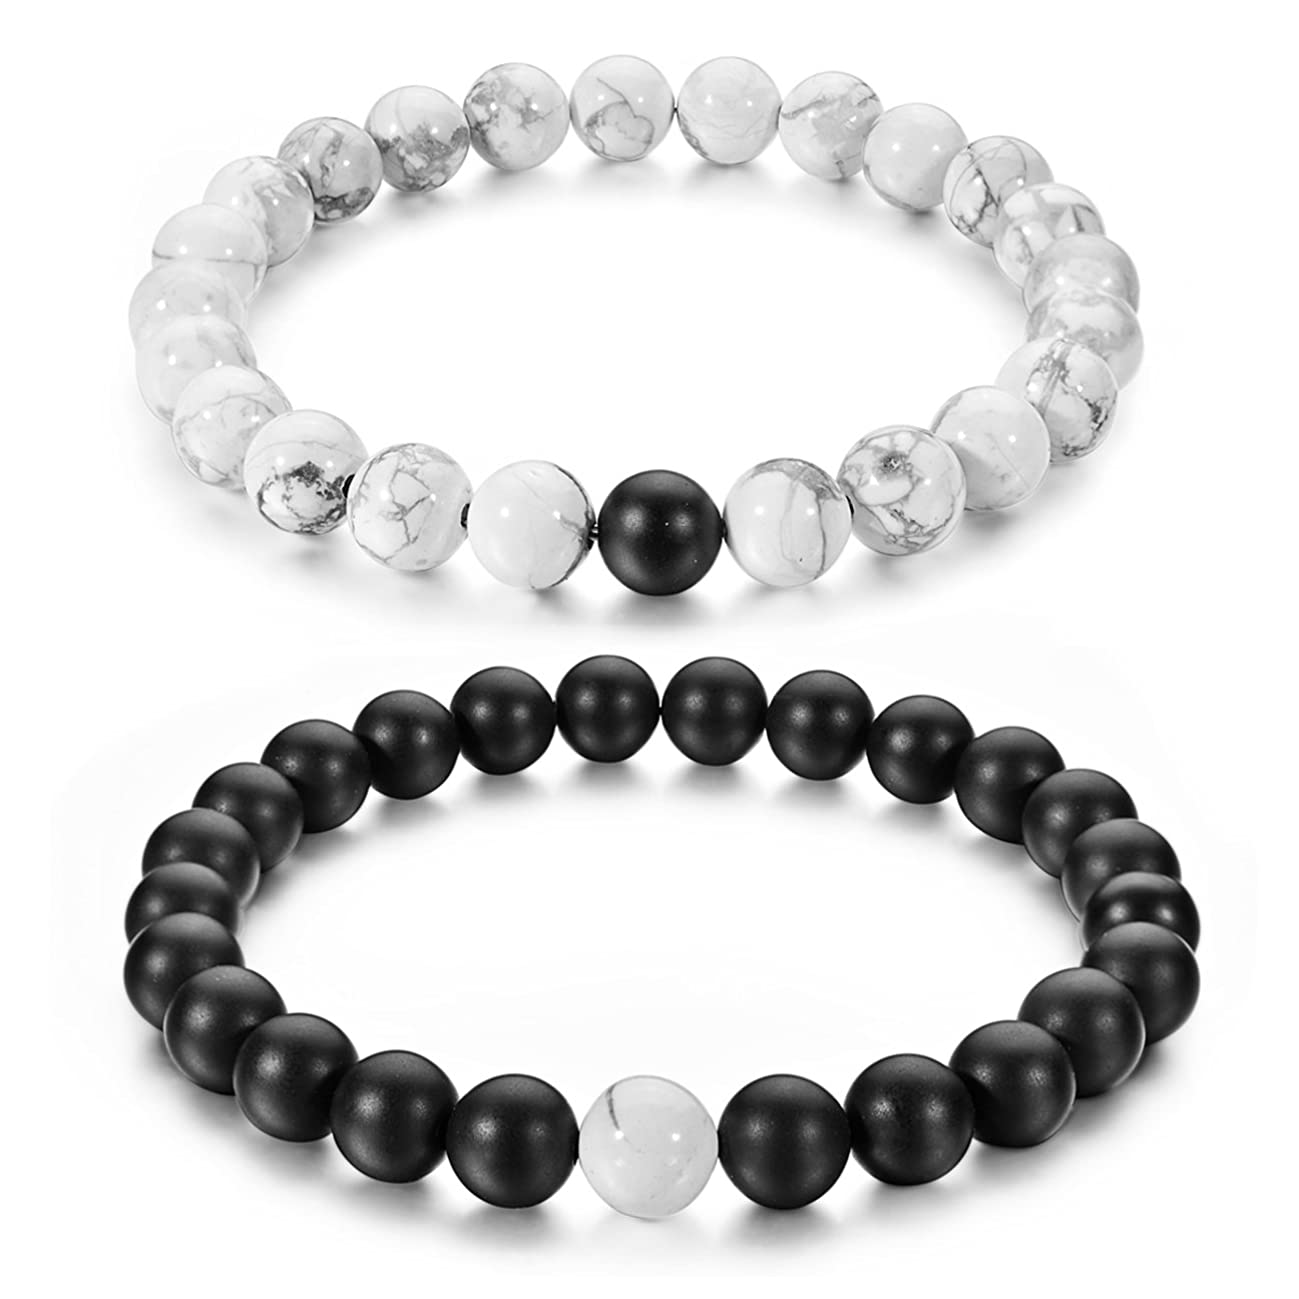 JEWMAY Couples His and Hers Bracelet Black Matte Agate & White Howlite 8mm Beads by Long Way 7.1